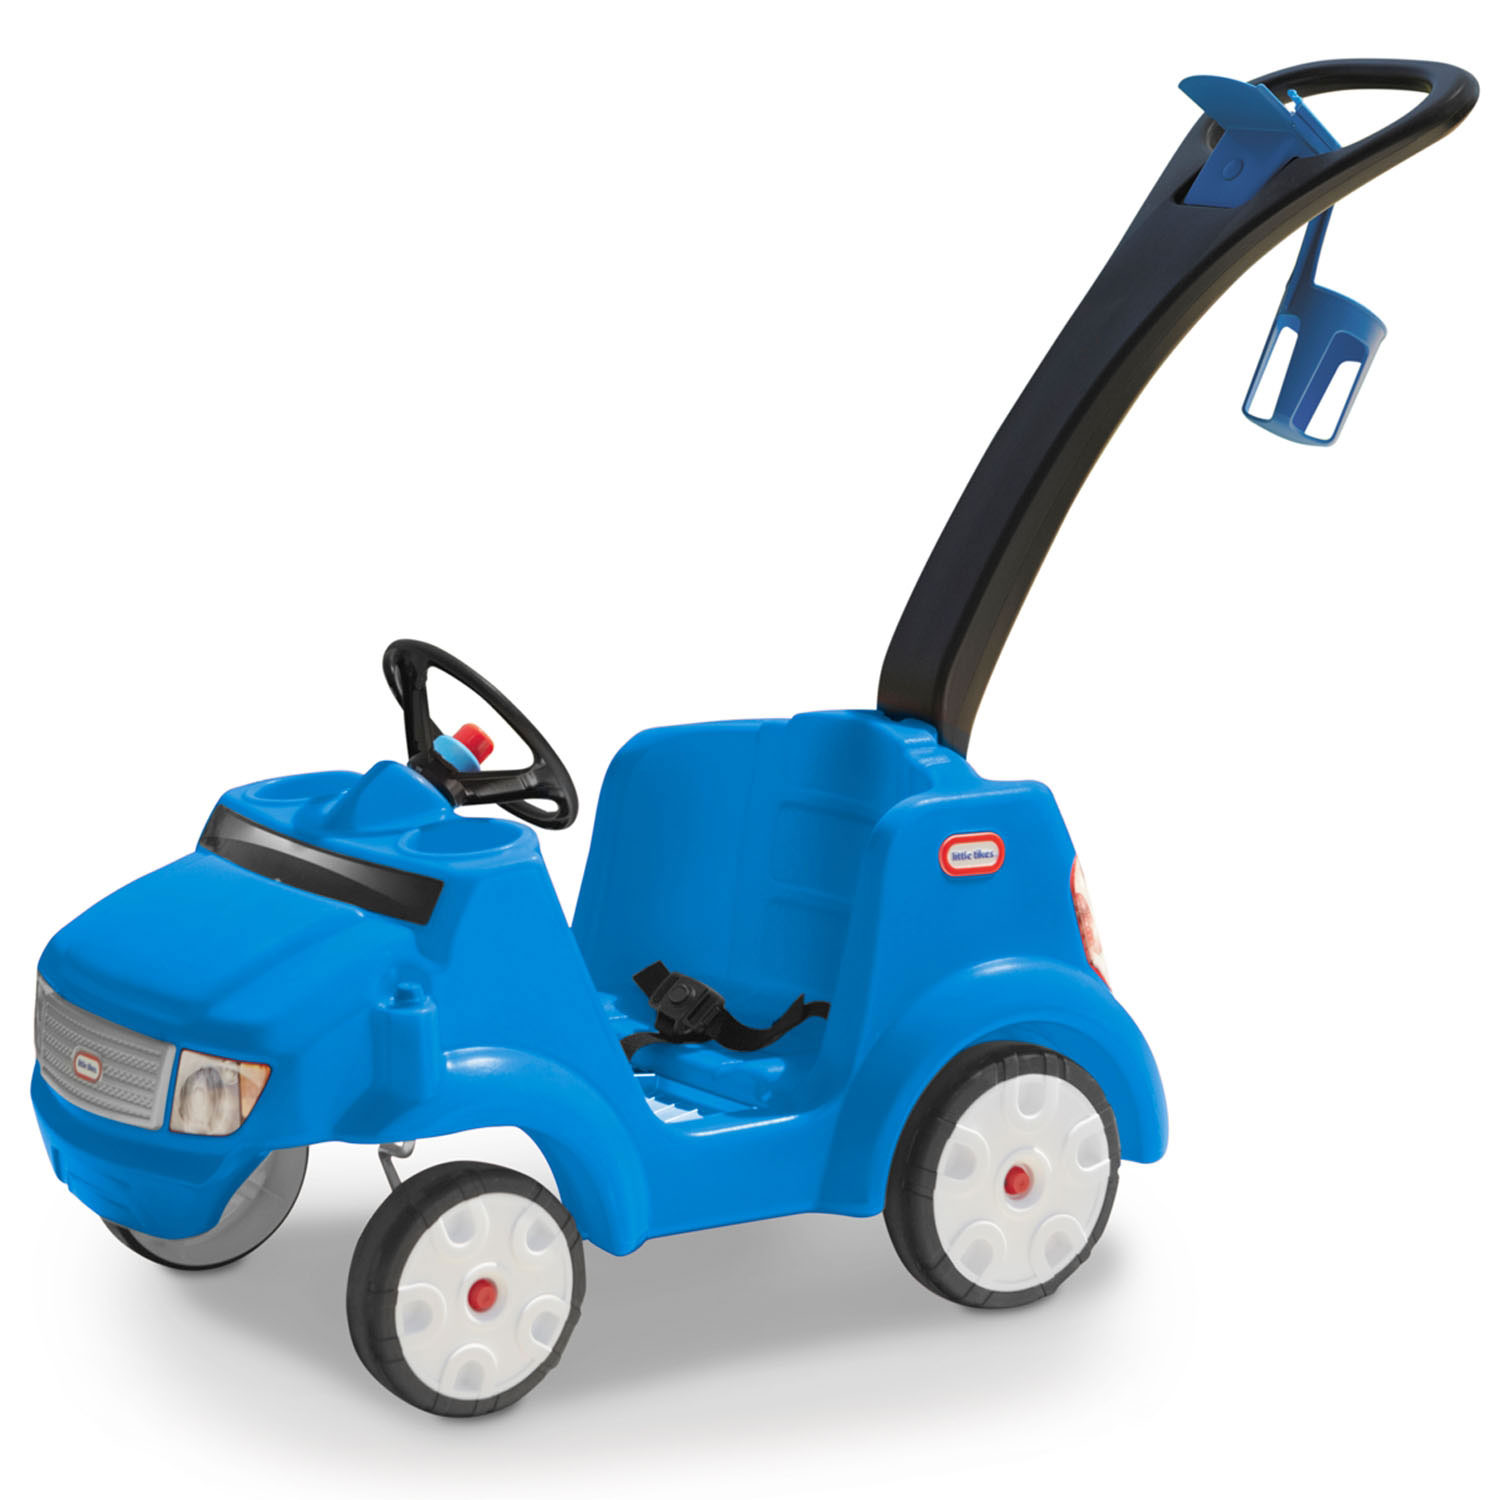 Little Tikes 2-in-1 Quiet Drive Buggy, with removable foot-board, Blue by Little Tikes